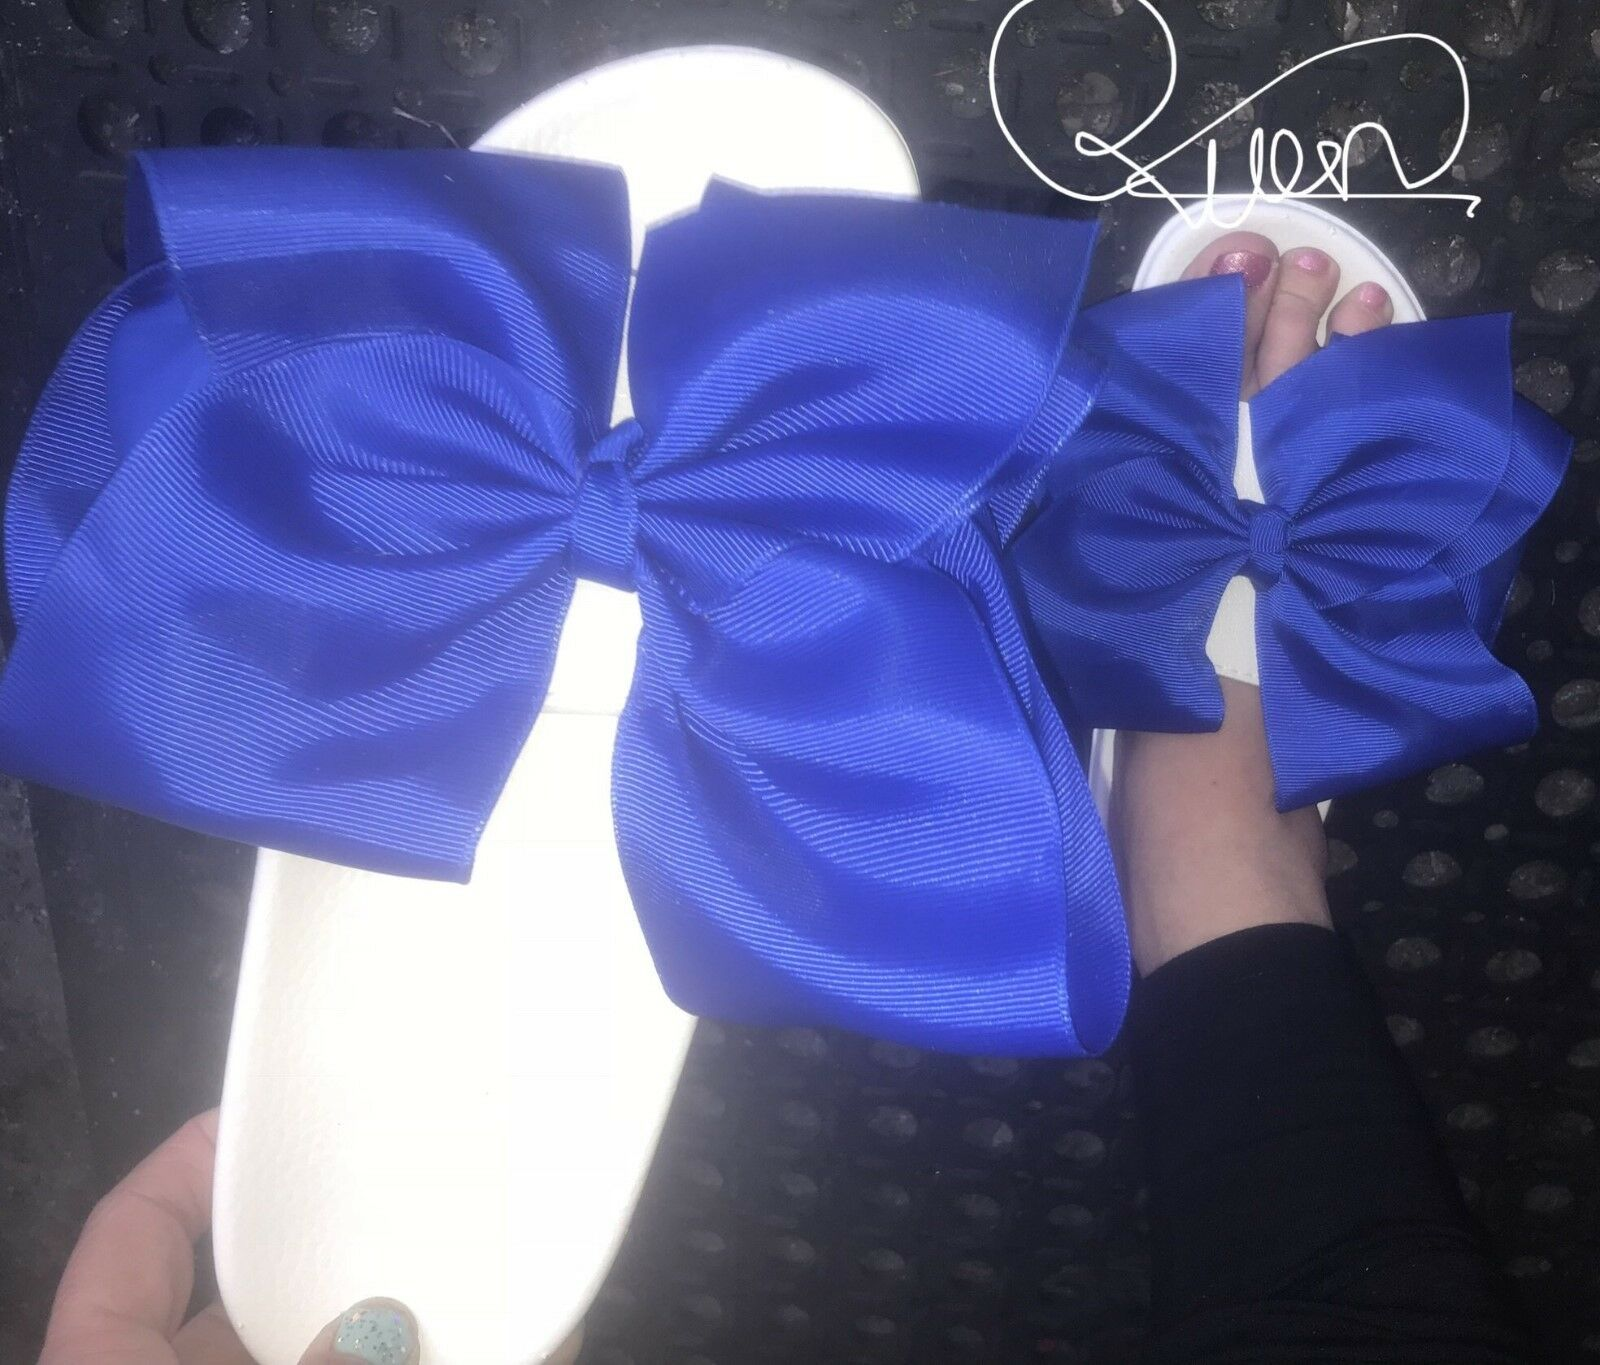 Beautiful Big Royal Blue Oversized Bow NEW Handmade Sliders Size 3,4,5,6,7,8 NEW Bow 30994f